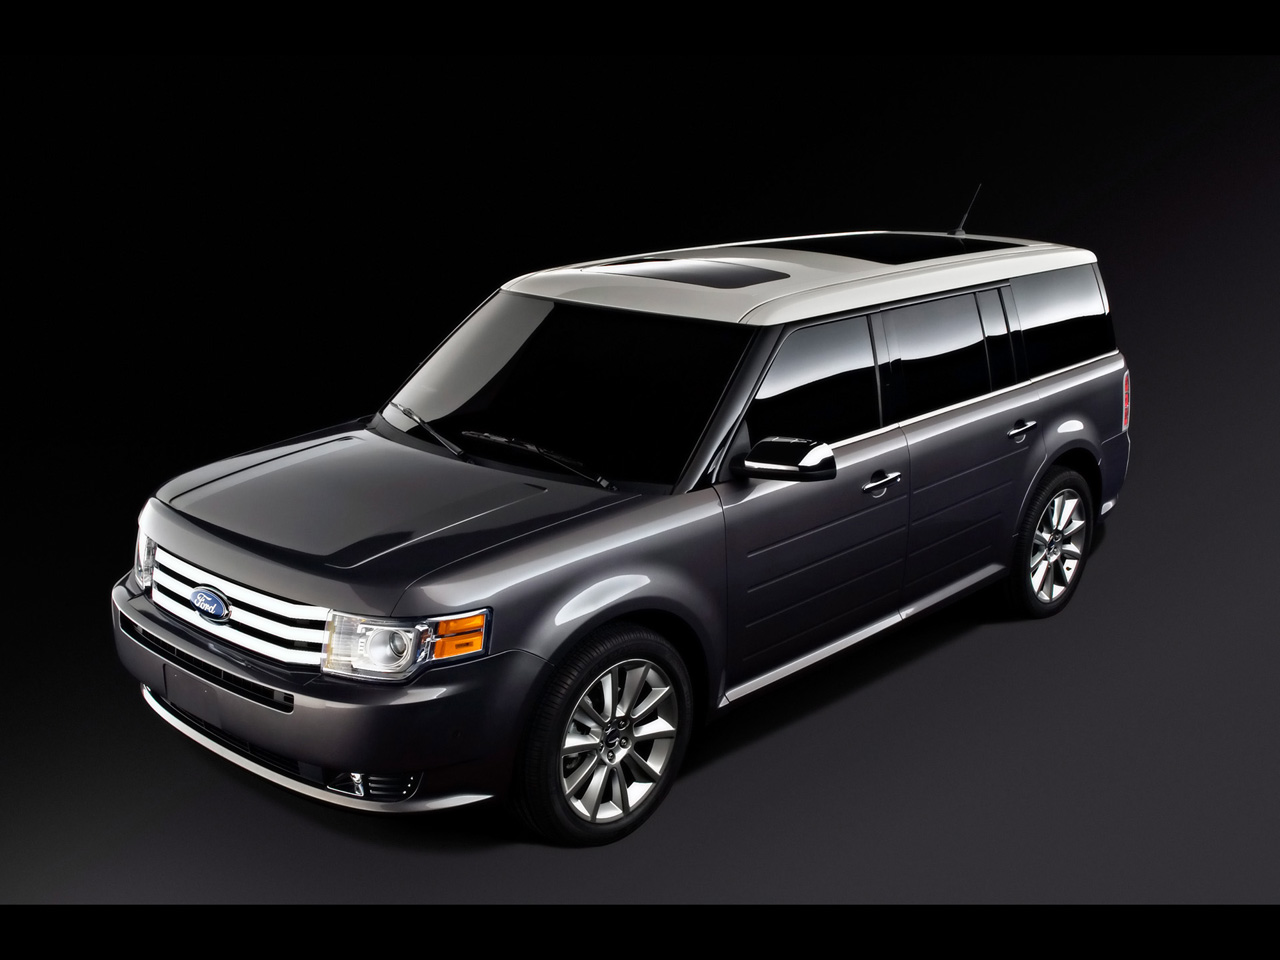 Hd Wallpapers  2011 Ford Flex Titanium Wallpapers